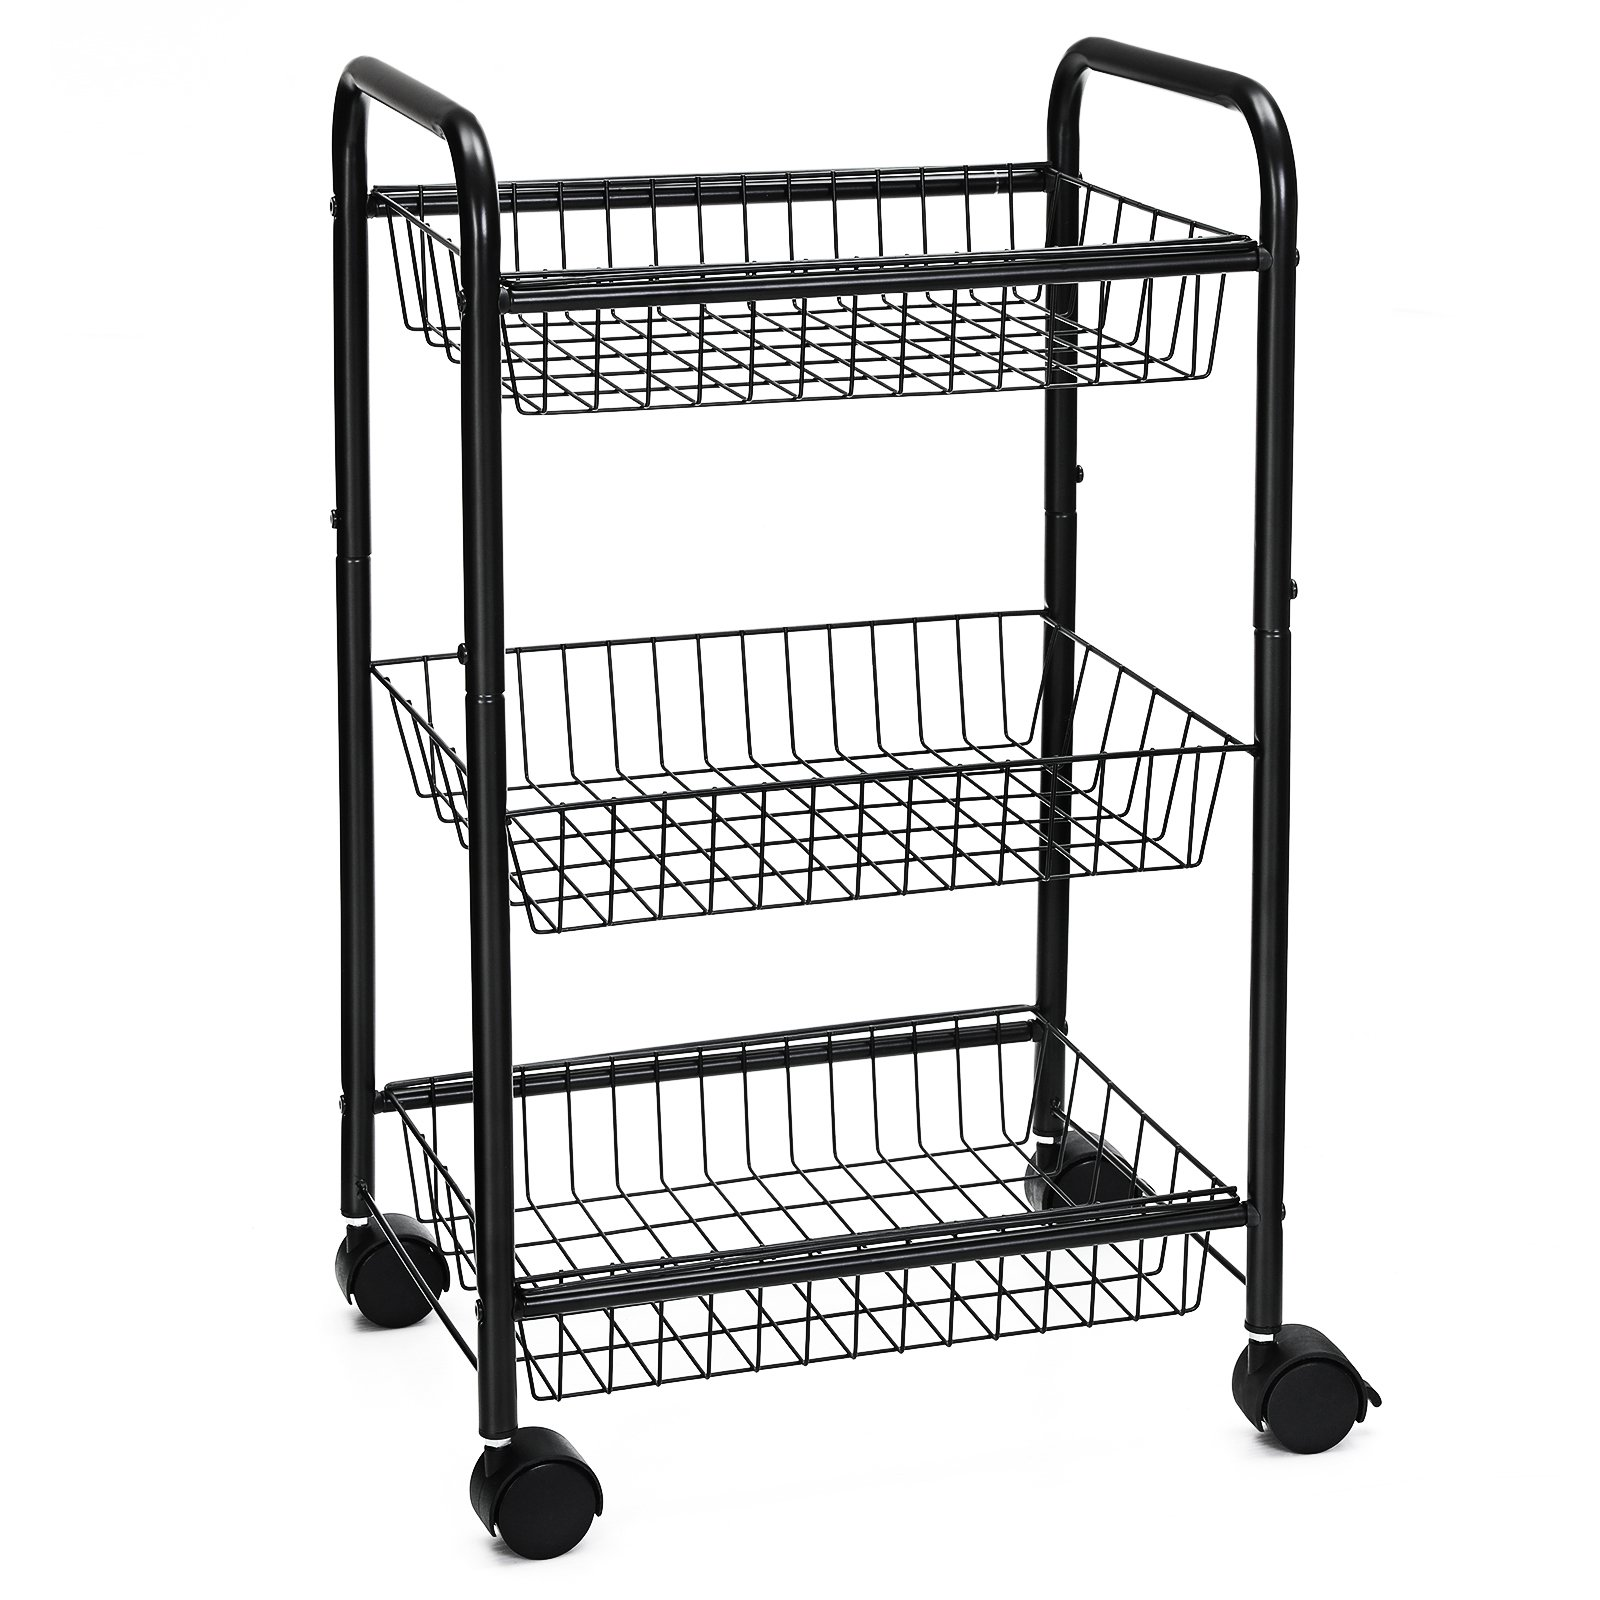 SONGMICS 3-Tire Metal Rolling Cart On Wheels with Baskets, Lockable Utility Trolley with Handles for Kitchen Bathroom Closet, Storage with Removable Shelves UBSC03BK by SONGMICS